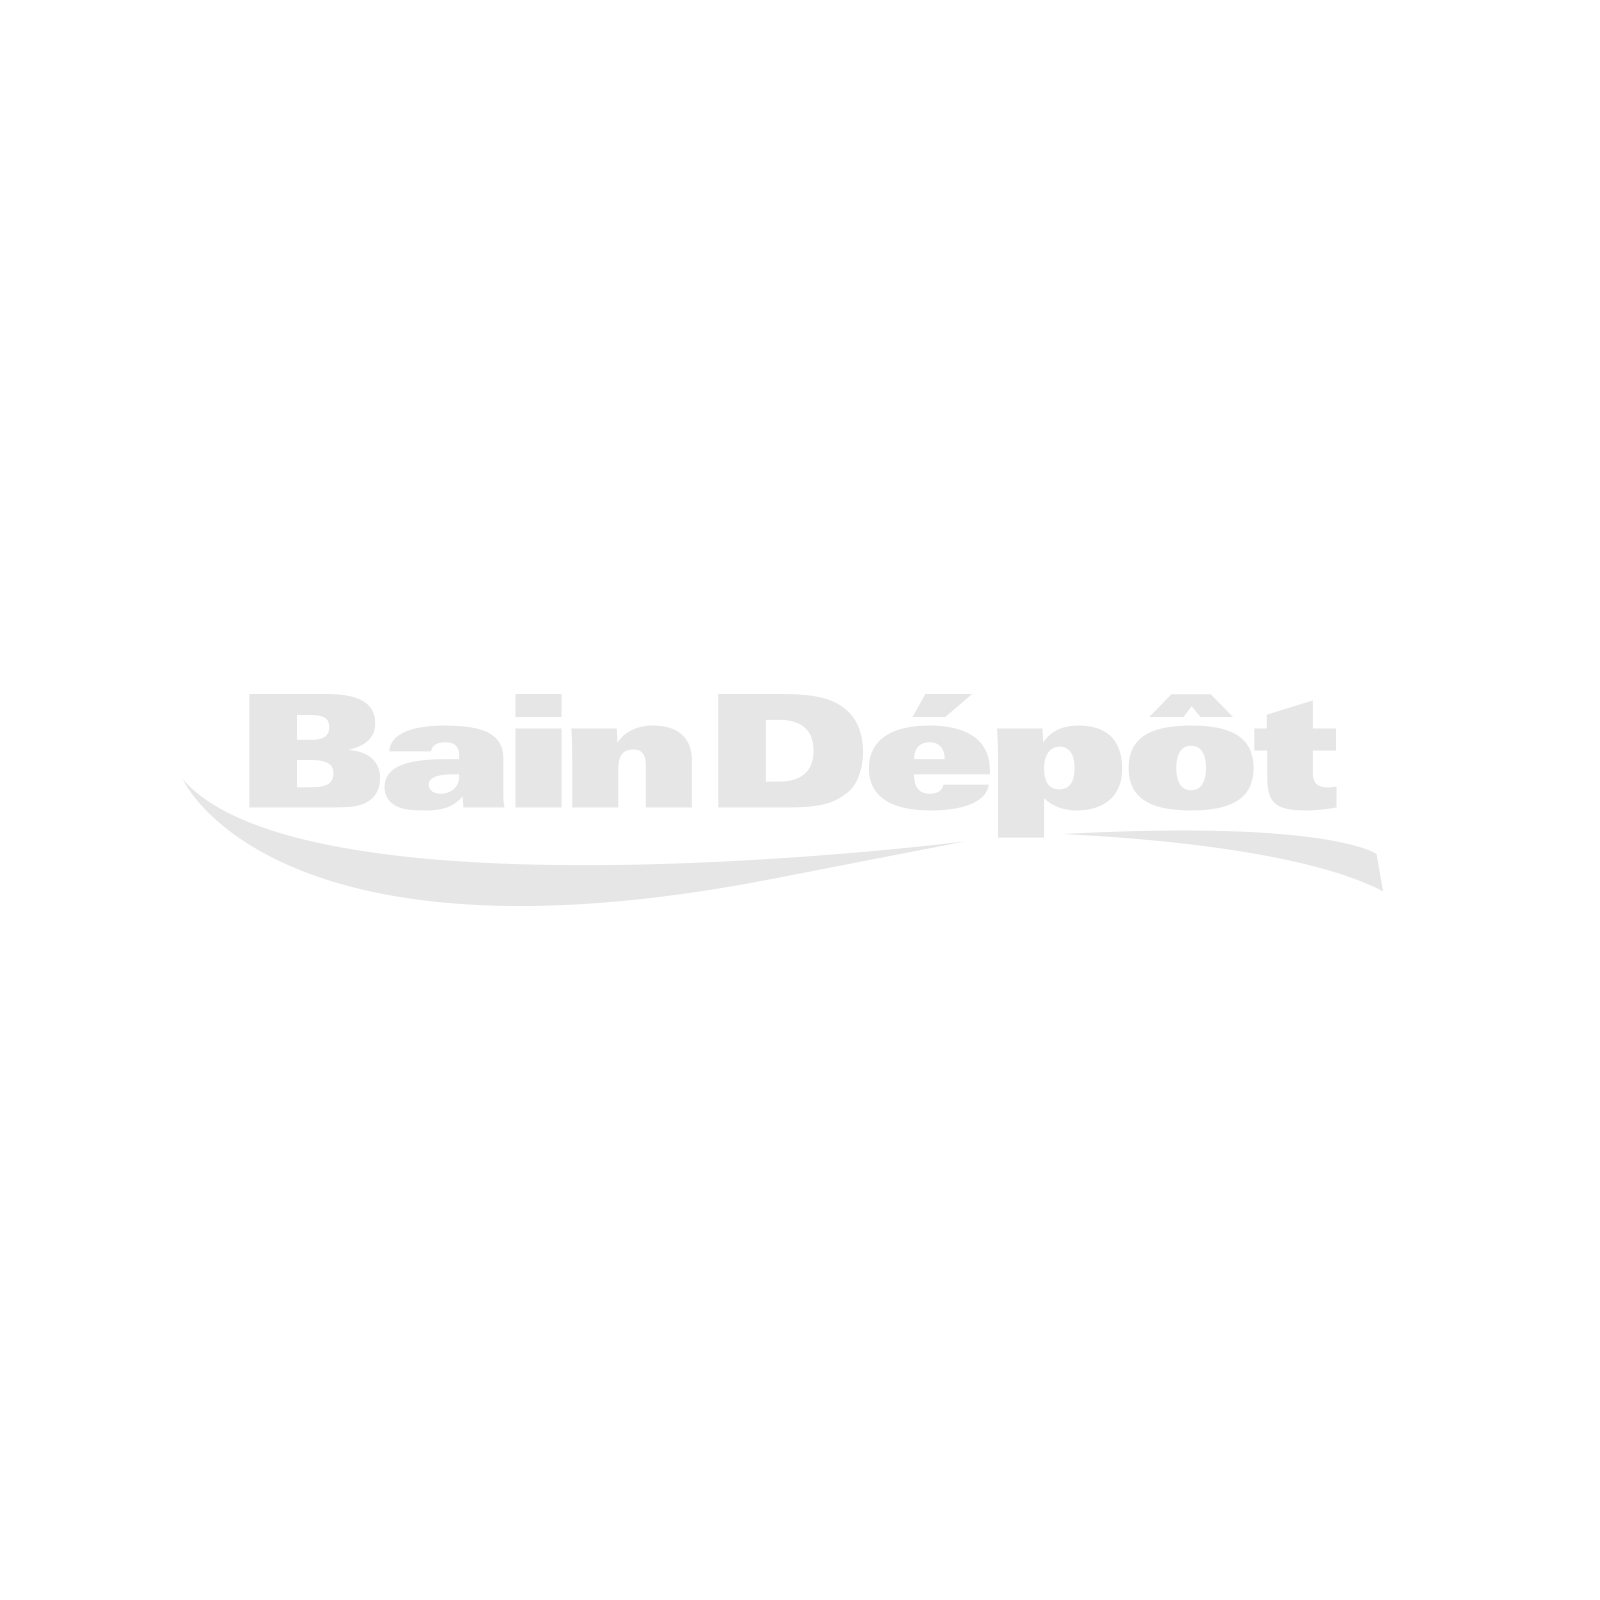 "36"" x 34.5"" One-door corner base kitchen cabinet"